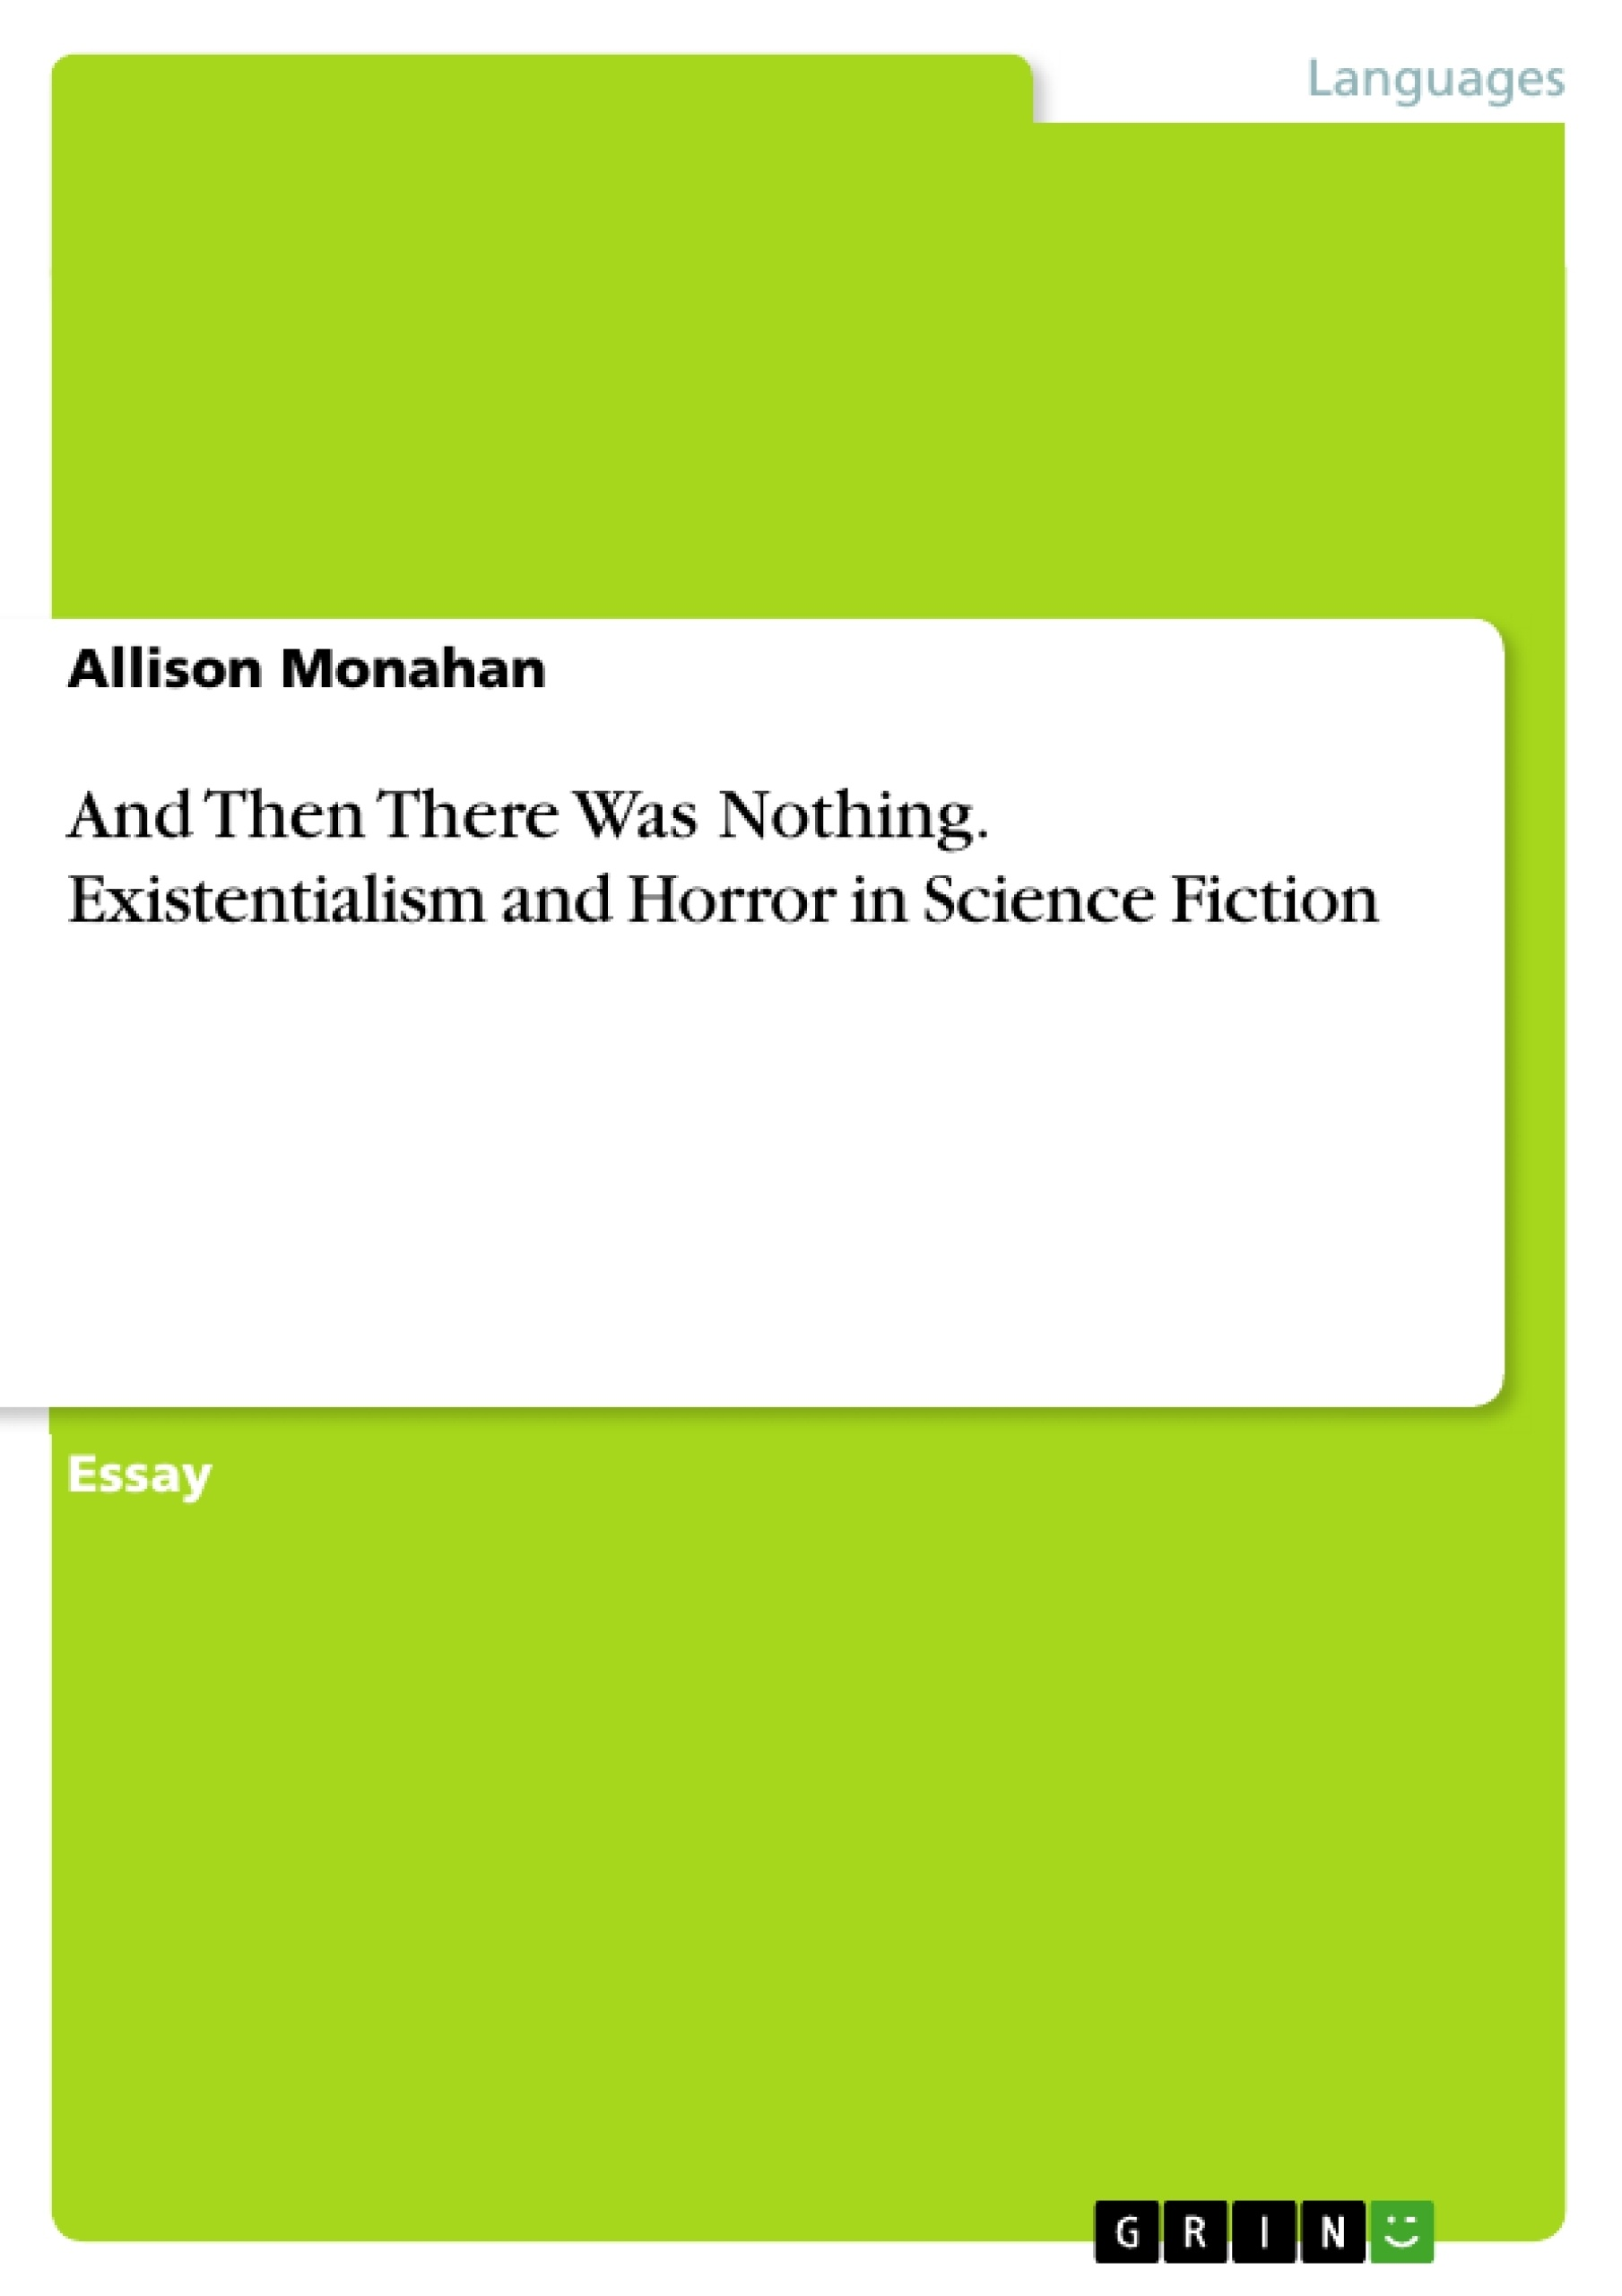 and then there was nothing existentialism and horror in science  existentialism and horror in science fiction essay